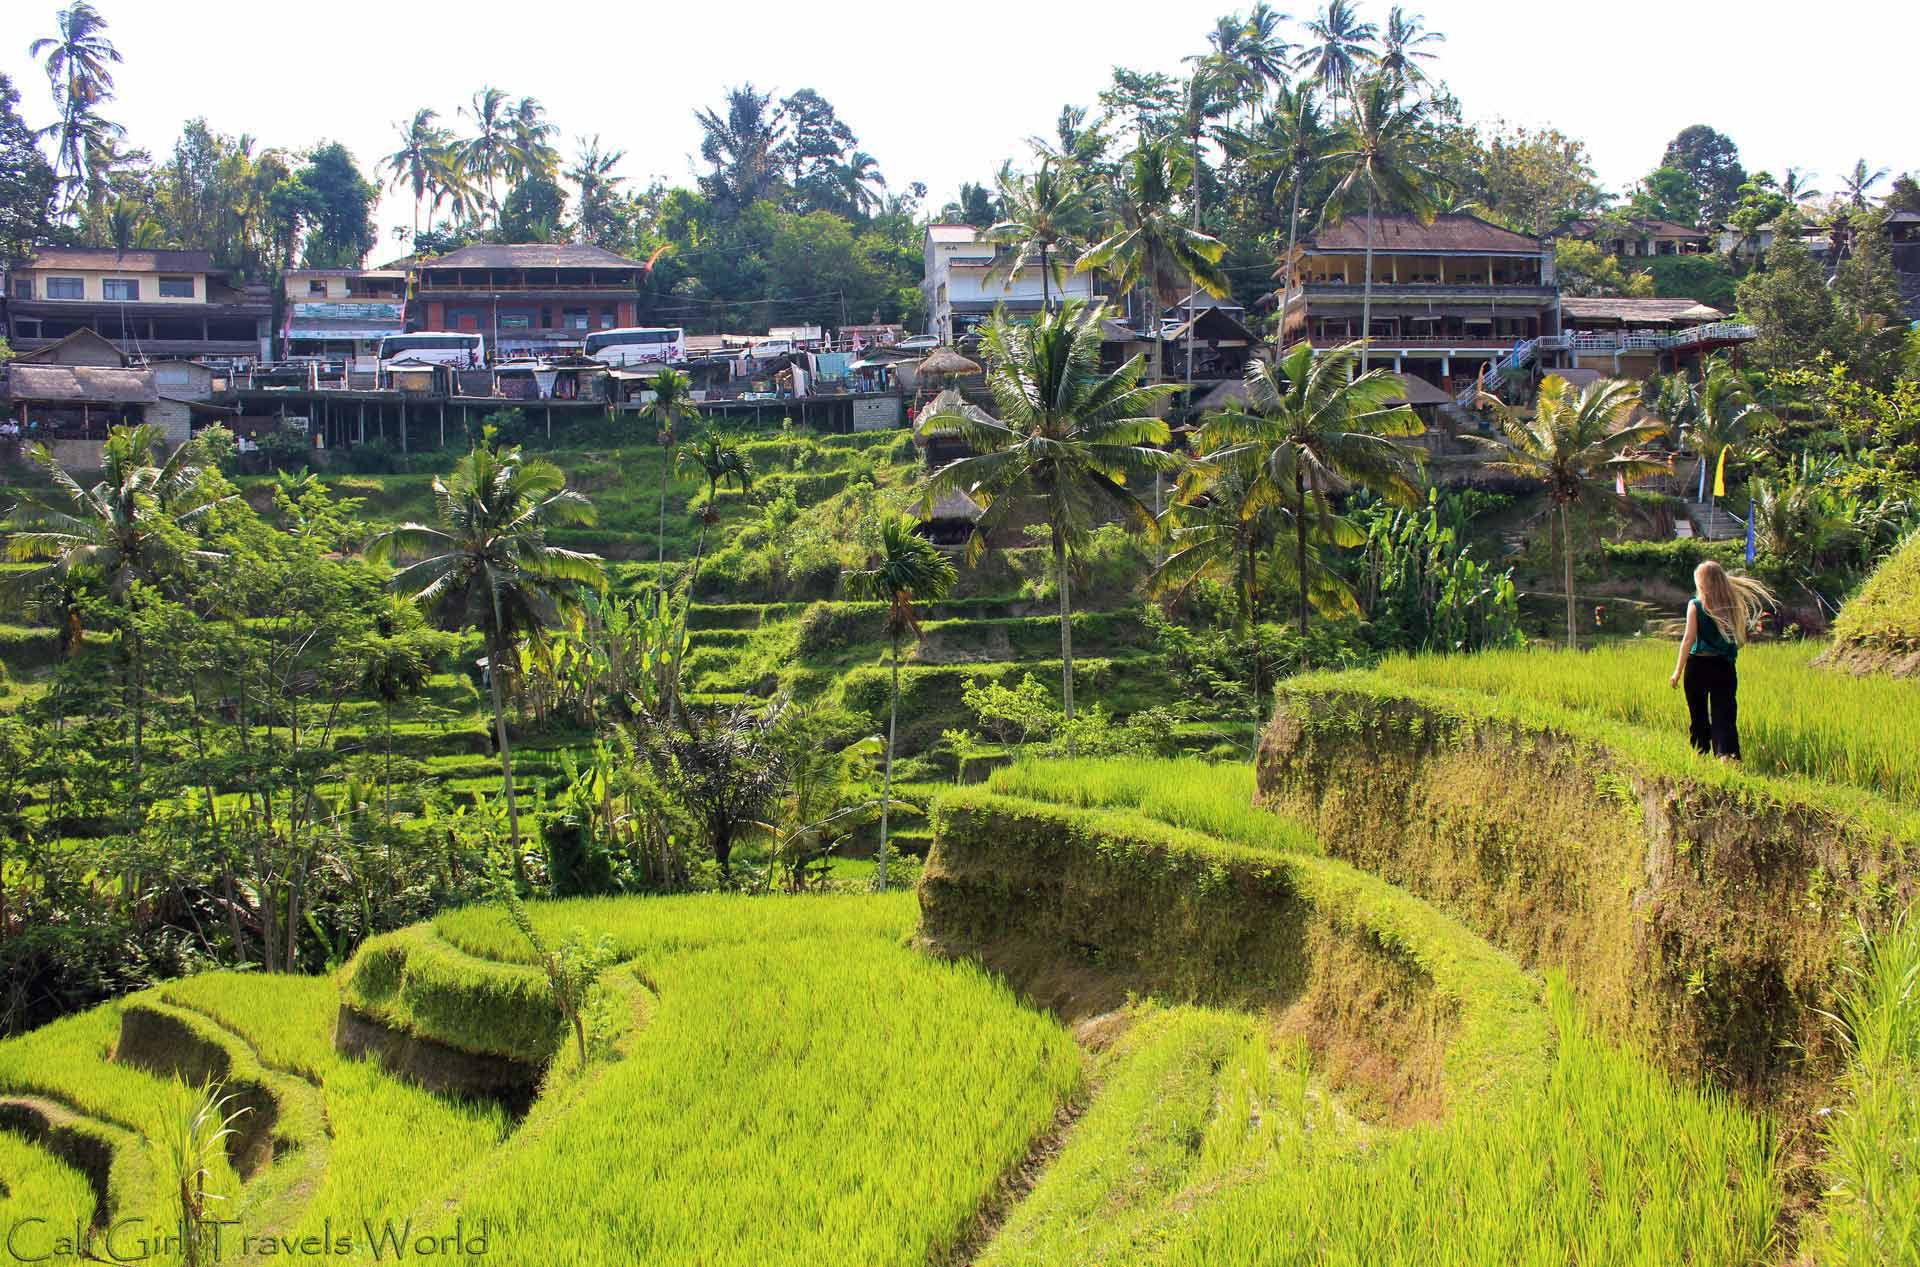 Travel photographer walking among the rice terraces in bali, indonesia with blonde hair blowing.